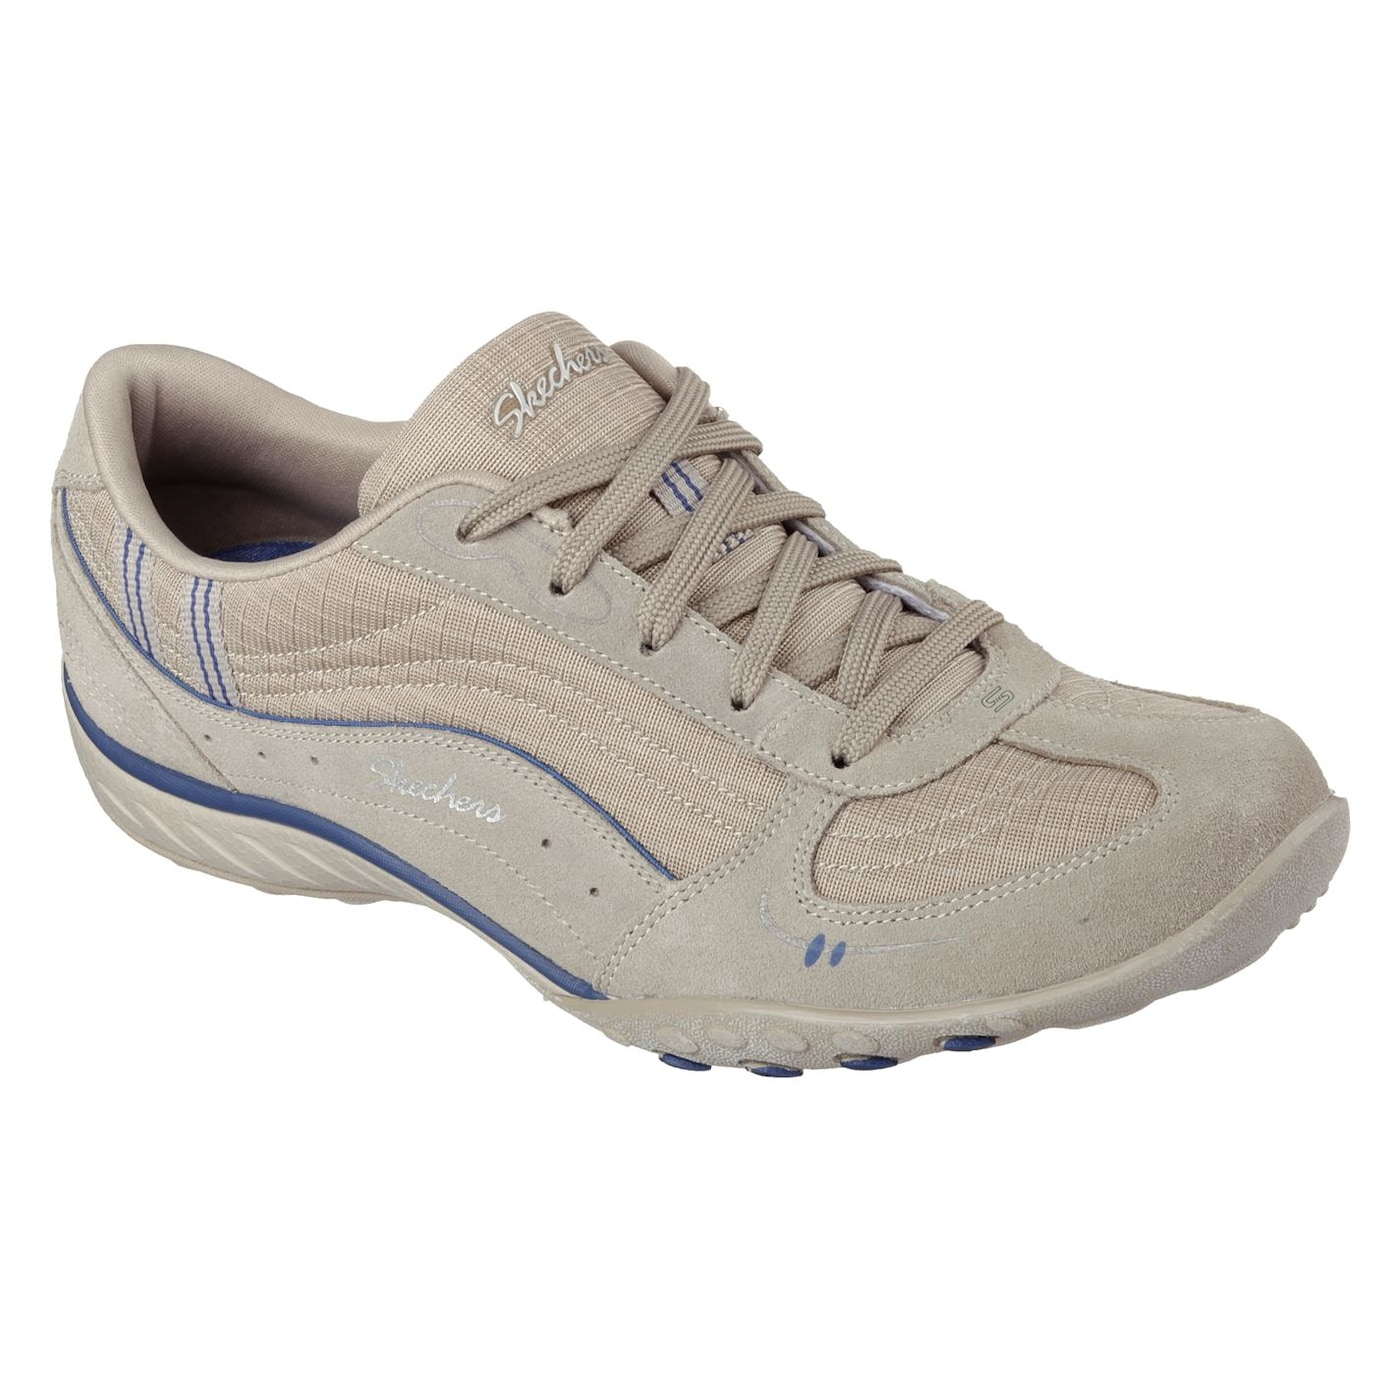 fda6f417c664 boty Skechers Act Just Relax dámské Shoes